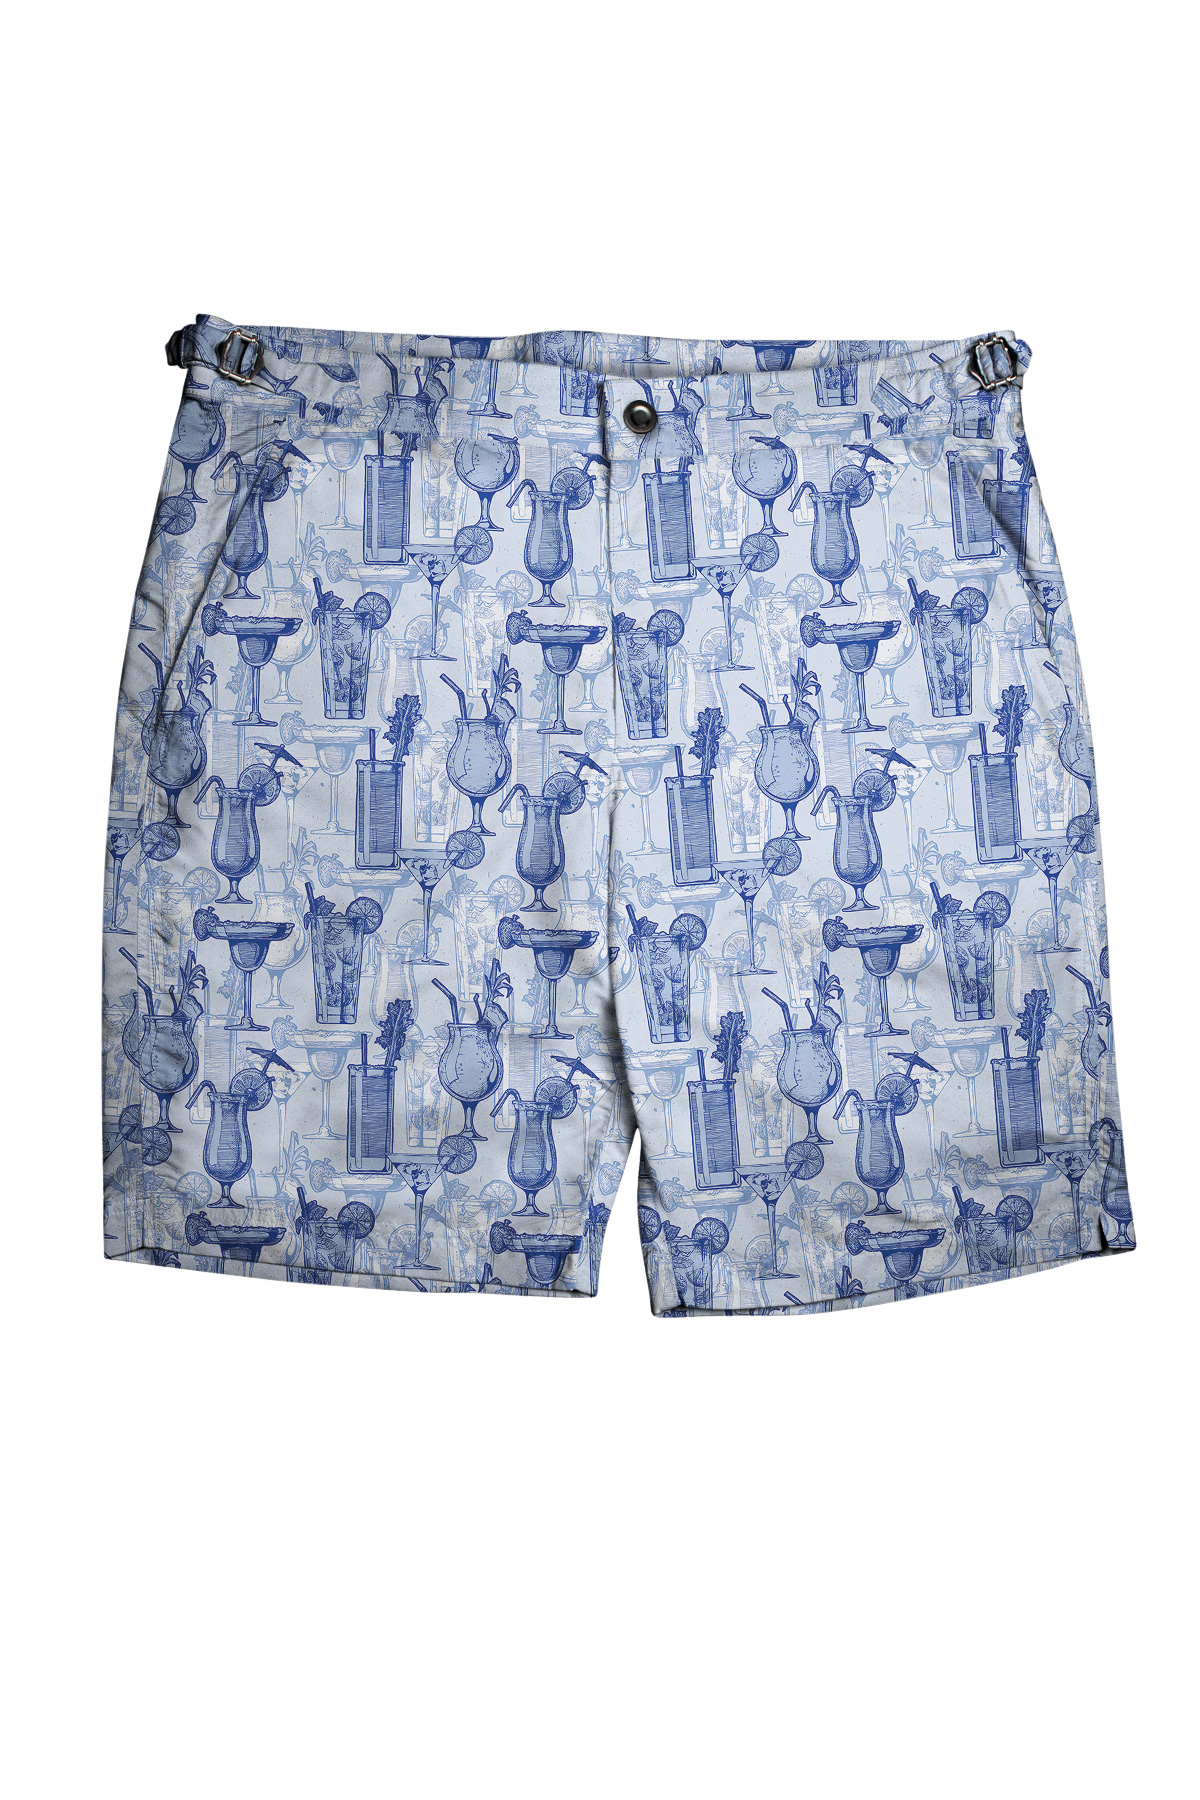 Cocktail Hour Swim Shorts